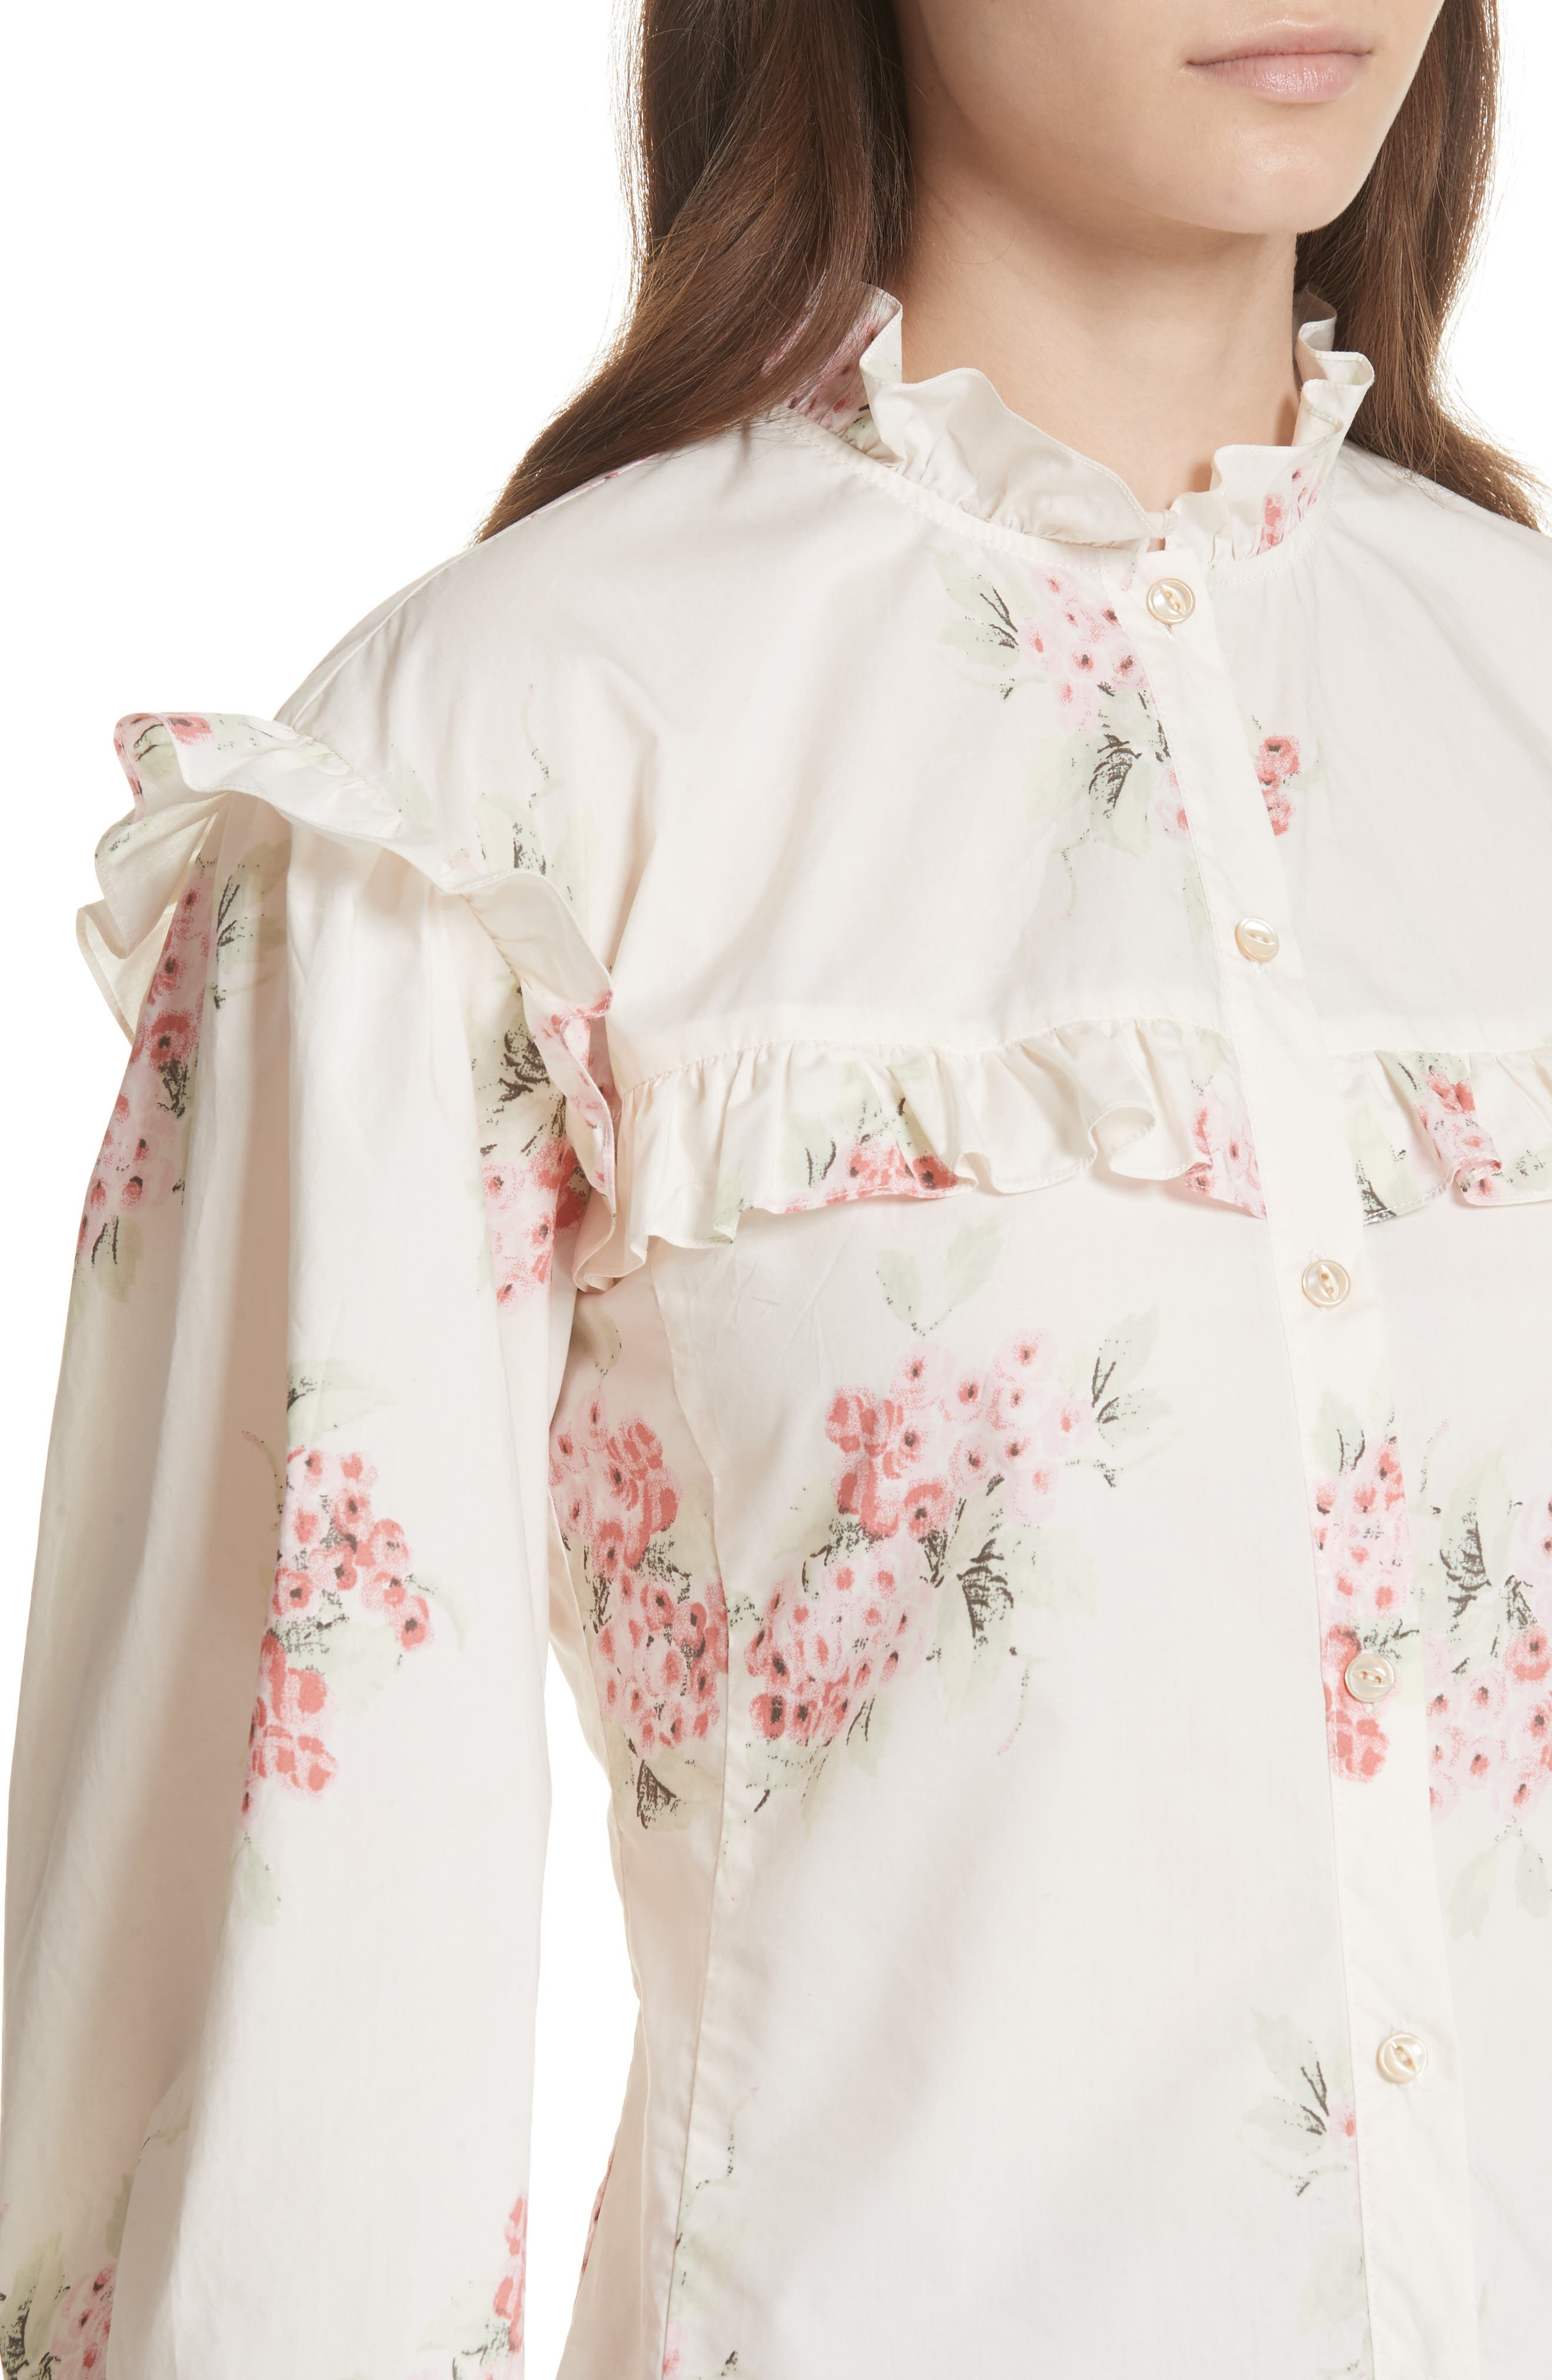 Maia Ruffled Floral Top,                             Alternate thumbnail 4, color,                             901